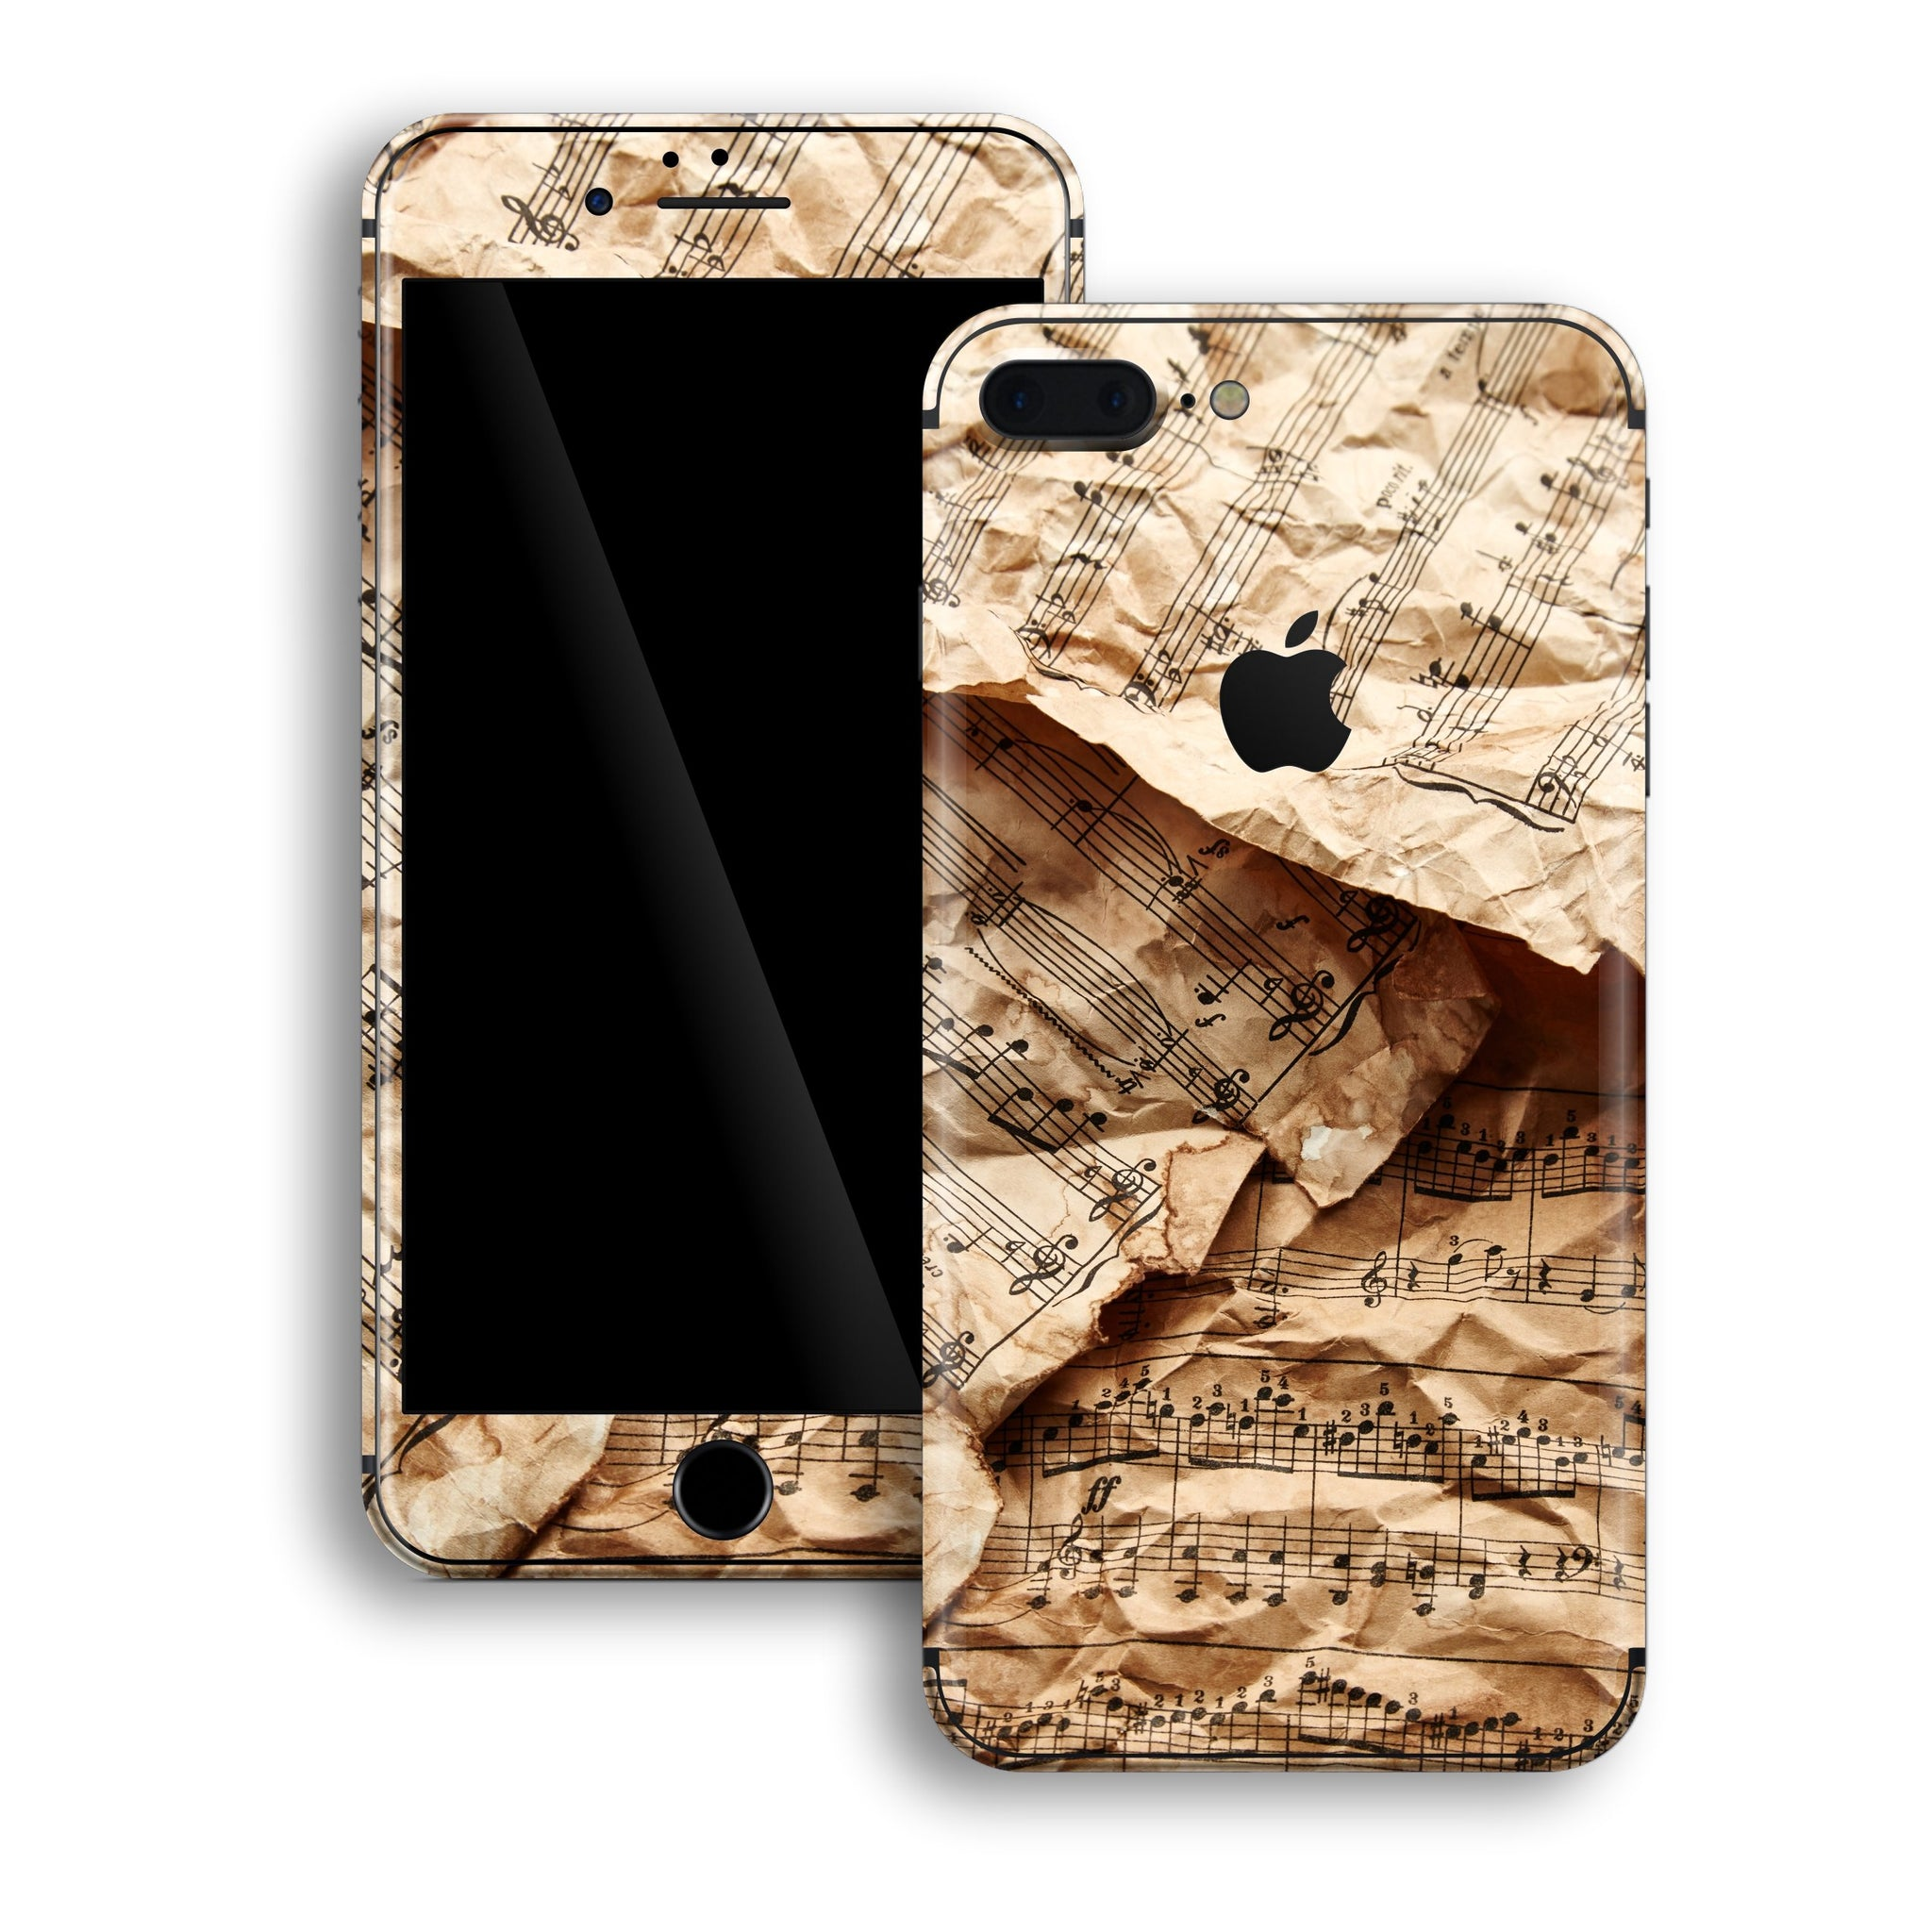 iPhone 8 PLUS Print Custom Signature PAPER Skin Wrap Decal by EasySkinz